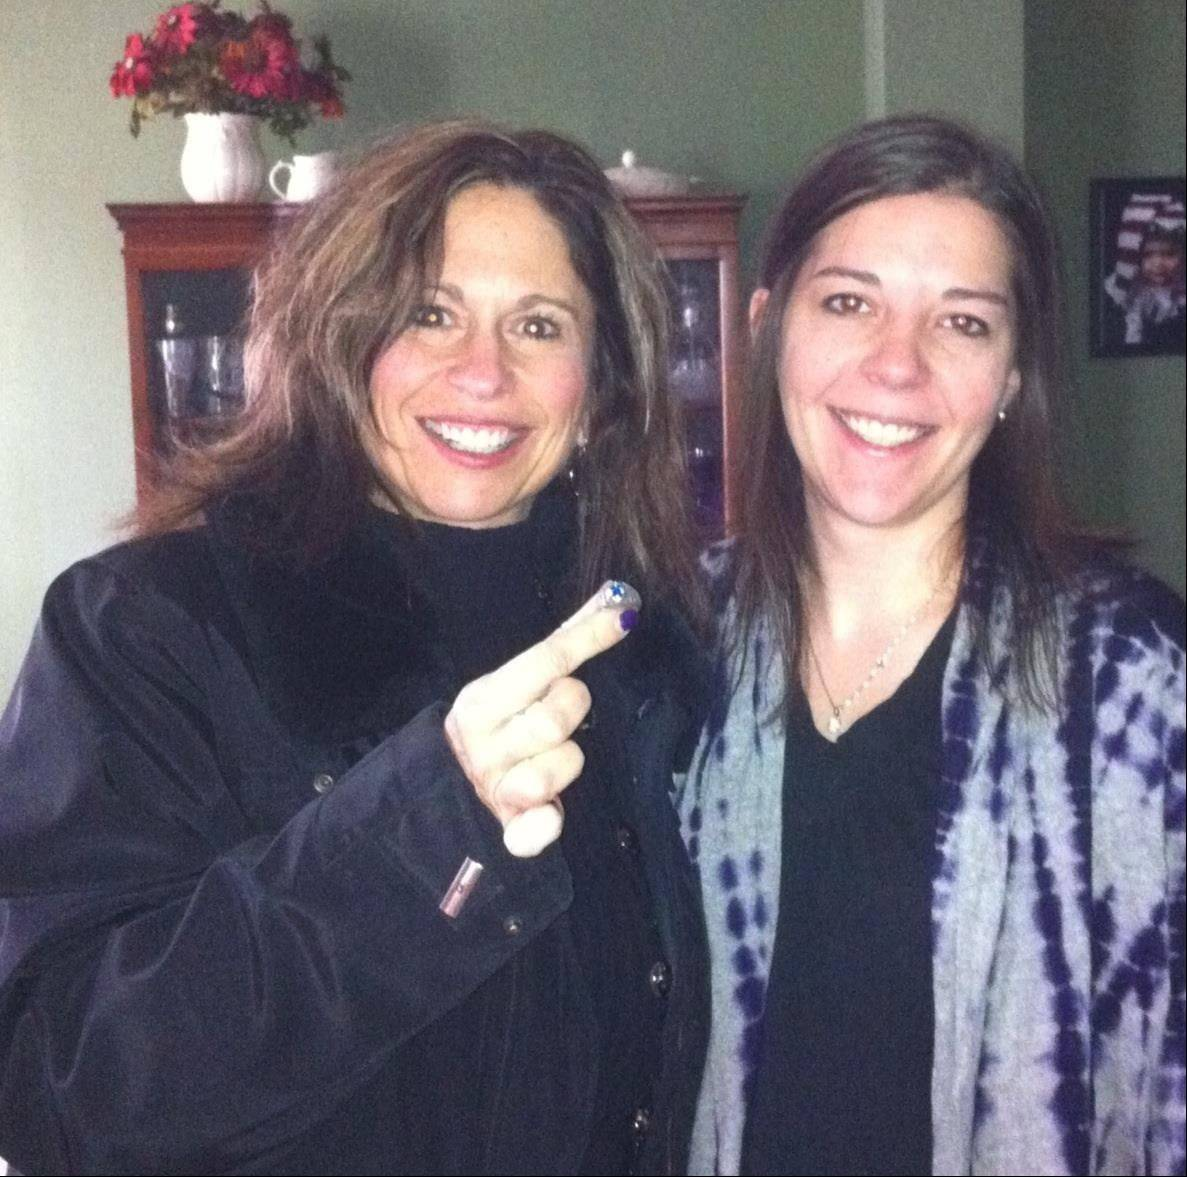 After 30 years, Beth Orticelli, left, was returned her Schaumburg High School class ring on Saturday. She had traded it with a friend who lived in Melissa Patterson's house after graduating from high school. Patterson, right, found the ring in her yard in October and tracked down Orticelli.